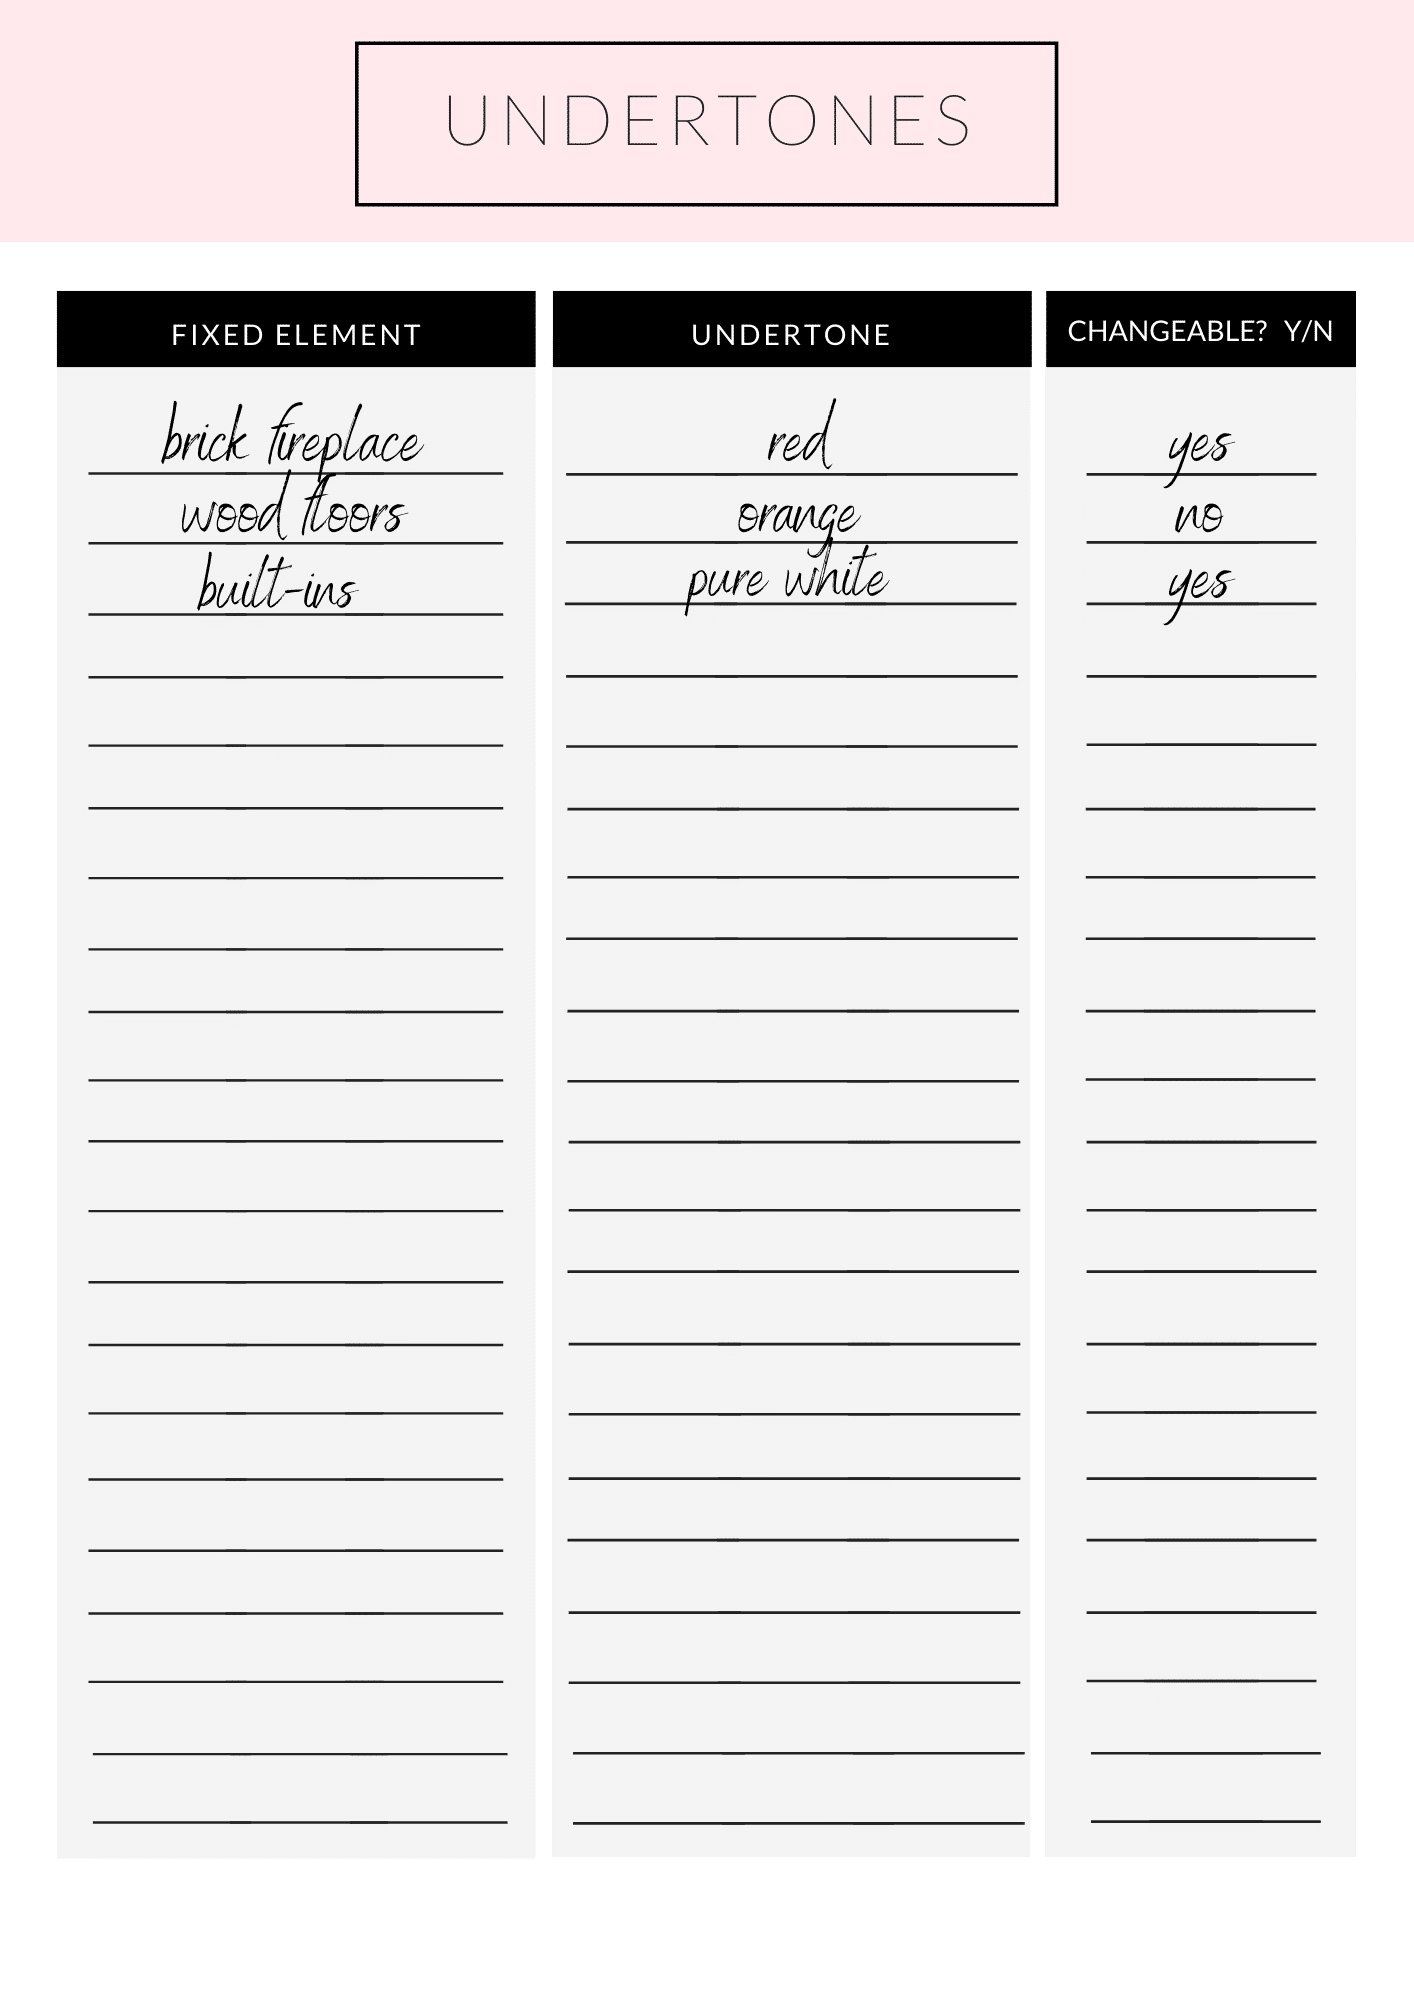 Undertone worksheet for understanding the undertones already in your home like on a brick fireplace, wood floors and builtins.